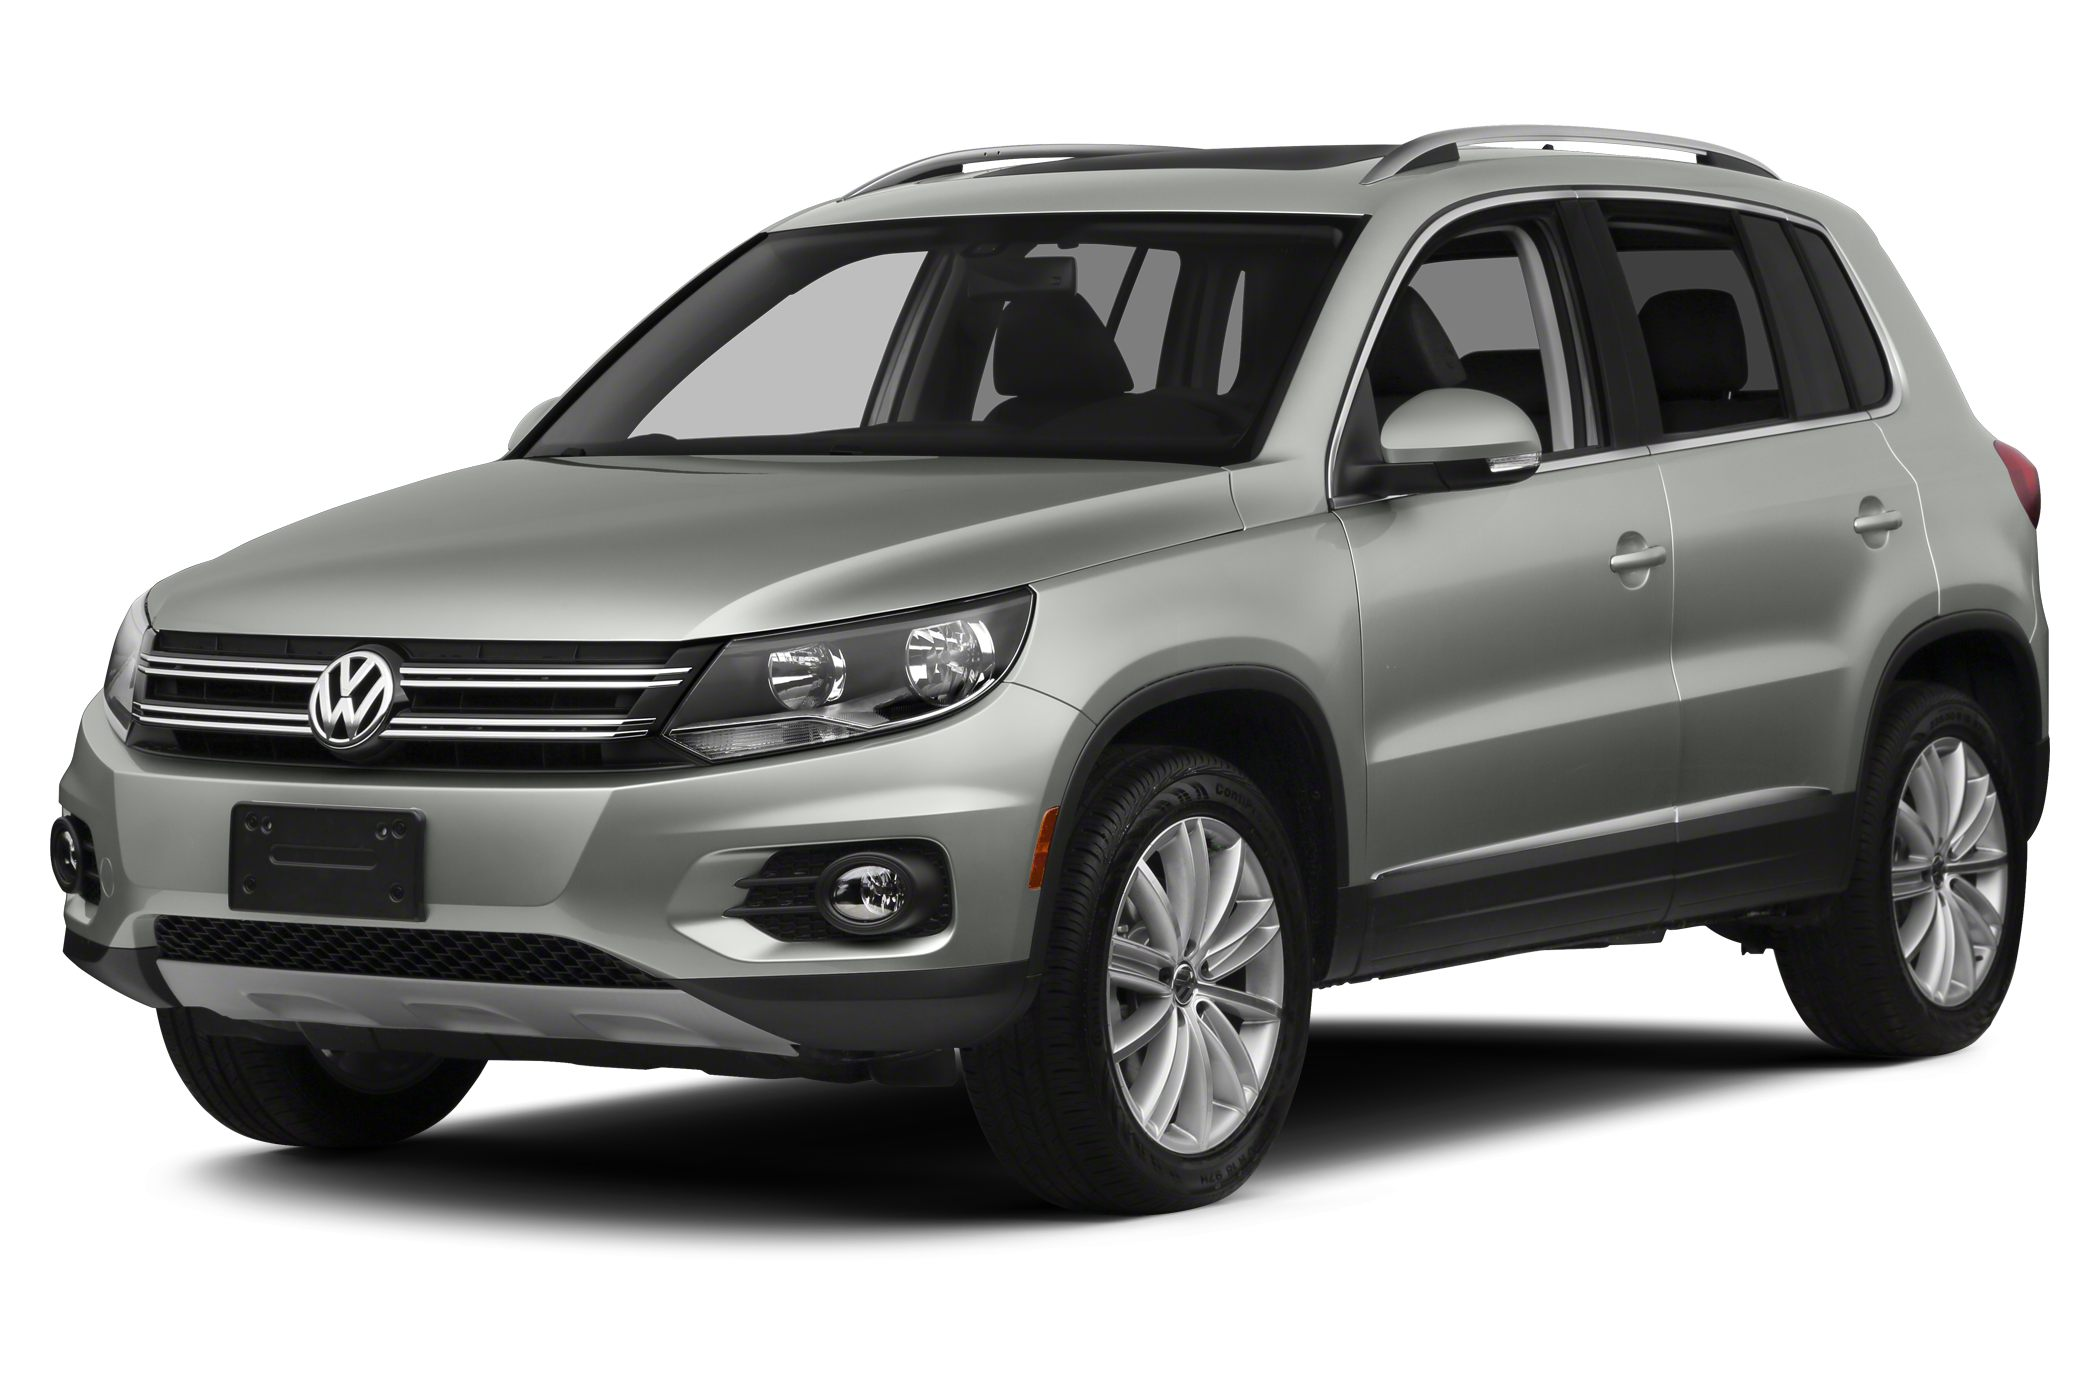 2014 Volkswagen Tiguan S SUV for sale in Tallahassee for $25,912 with 279 miles.